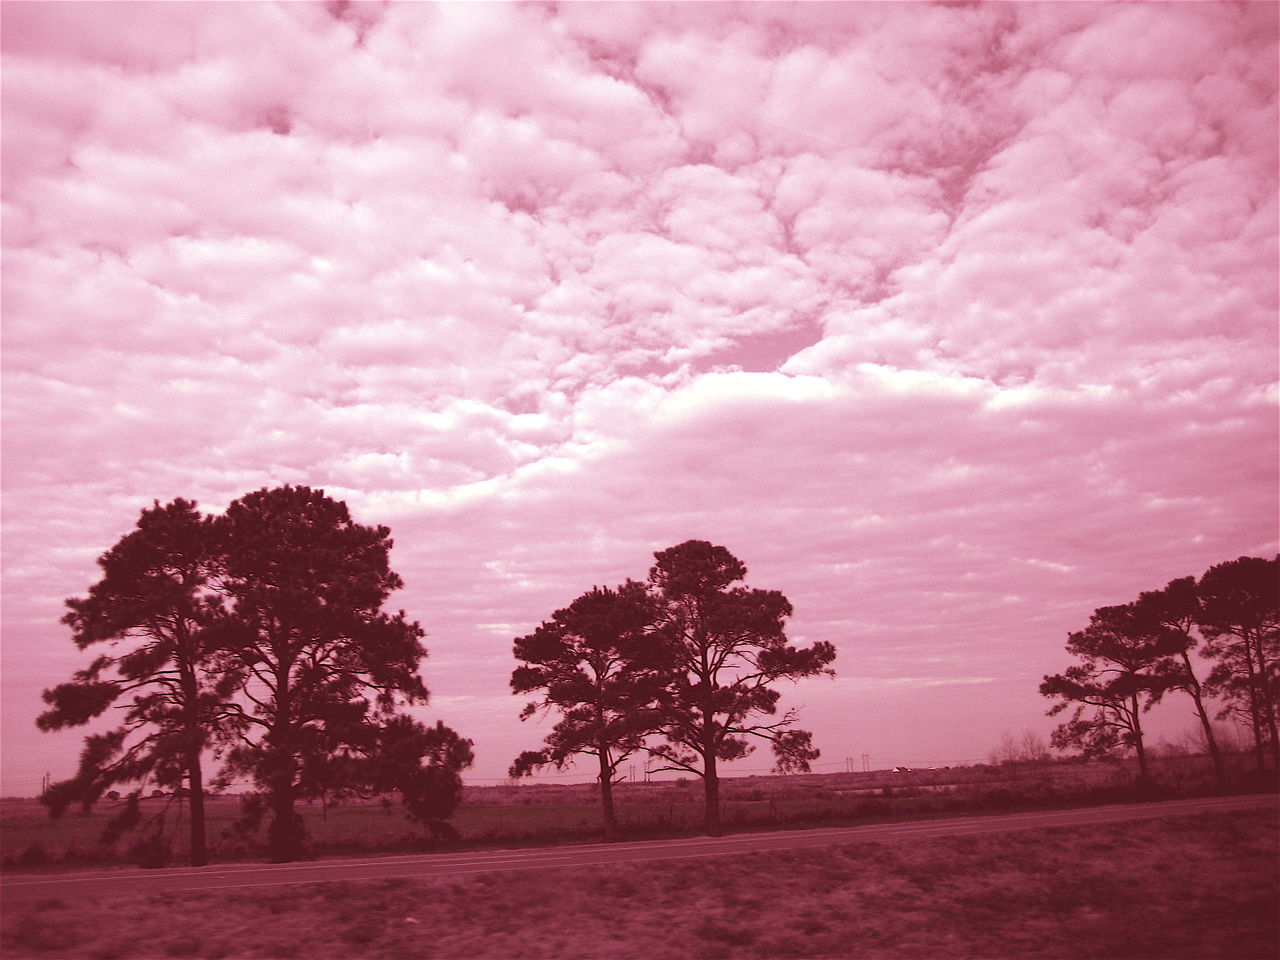 tree, beauty in nature, nature, sky, tranquility, scenics, pink color, no people, landscape, growth, tranquil scene, outdoors, day